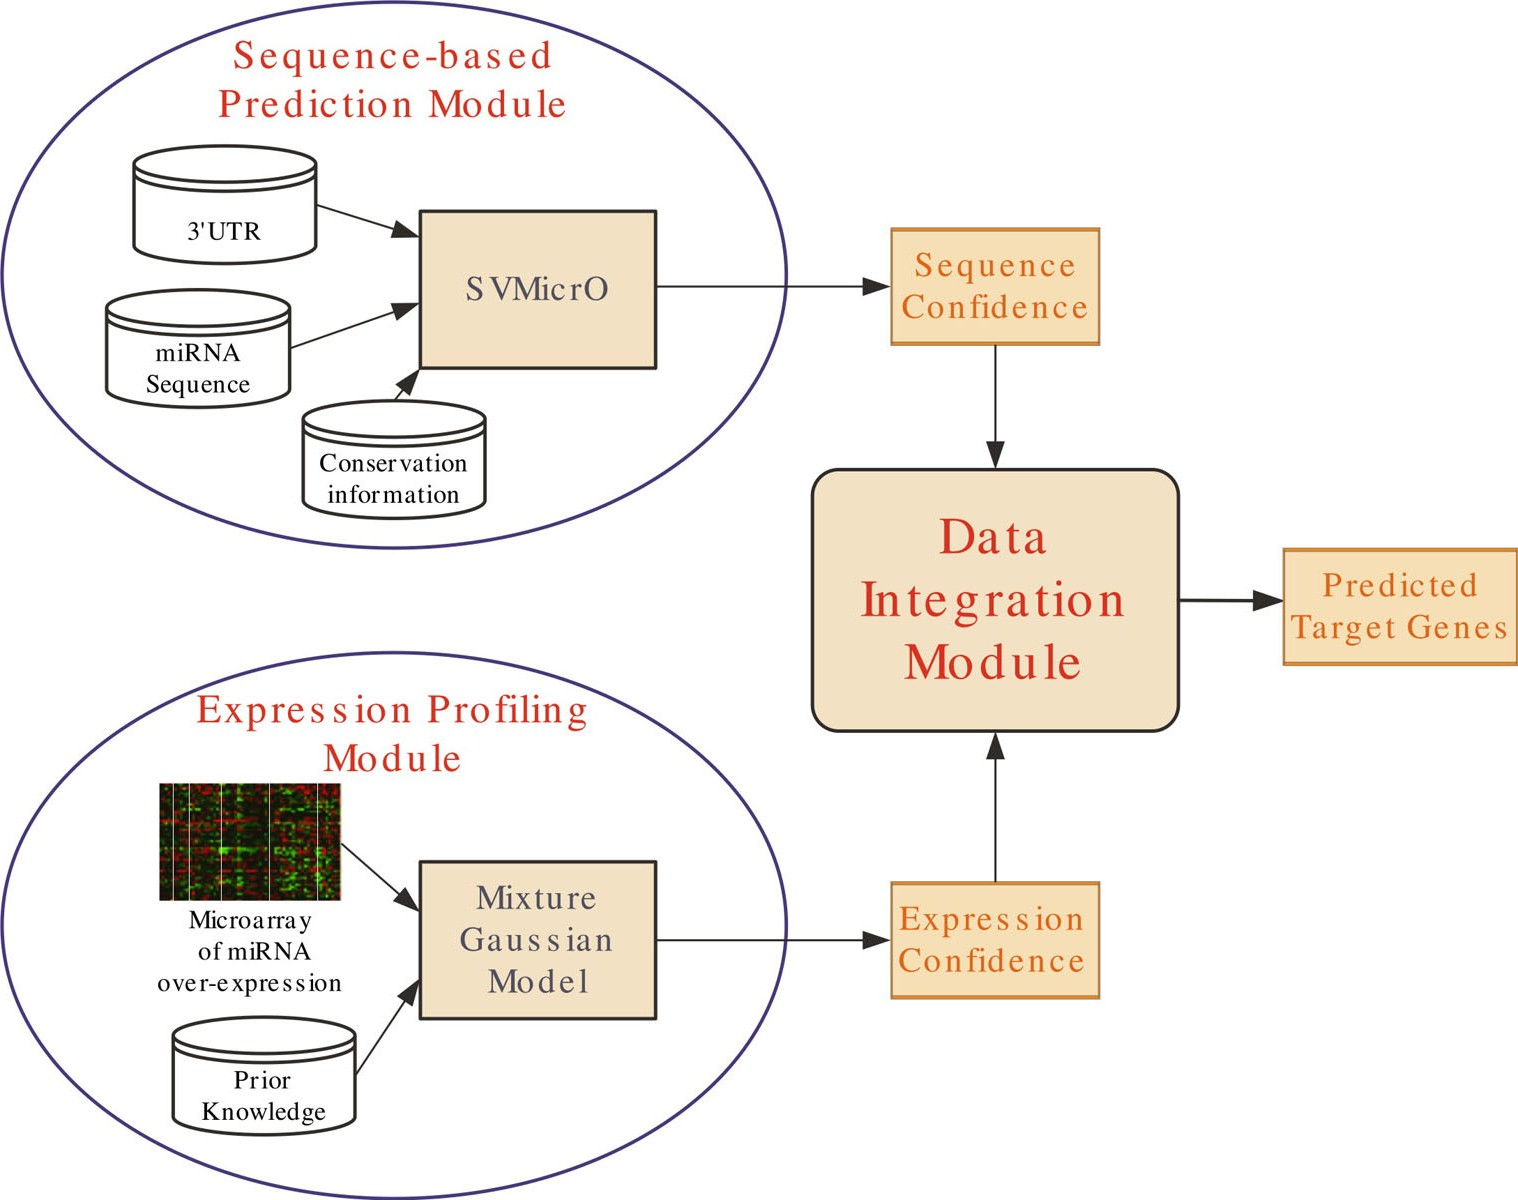 http://static-content.springer.com/image/art%3A10.1186%2F1471-2164-11-S3-S12/MediaObjects/12864_2010_Article_3455_Fig1_HTML.jpg